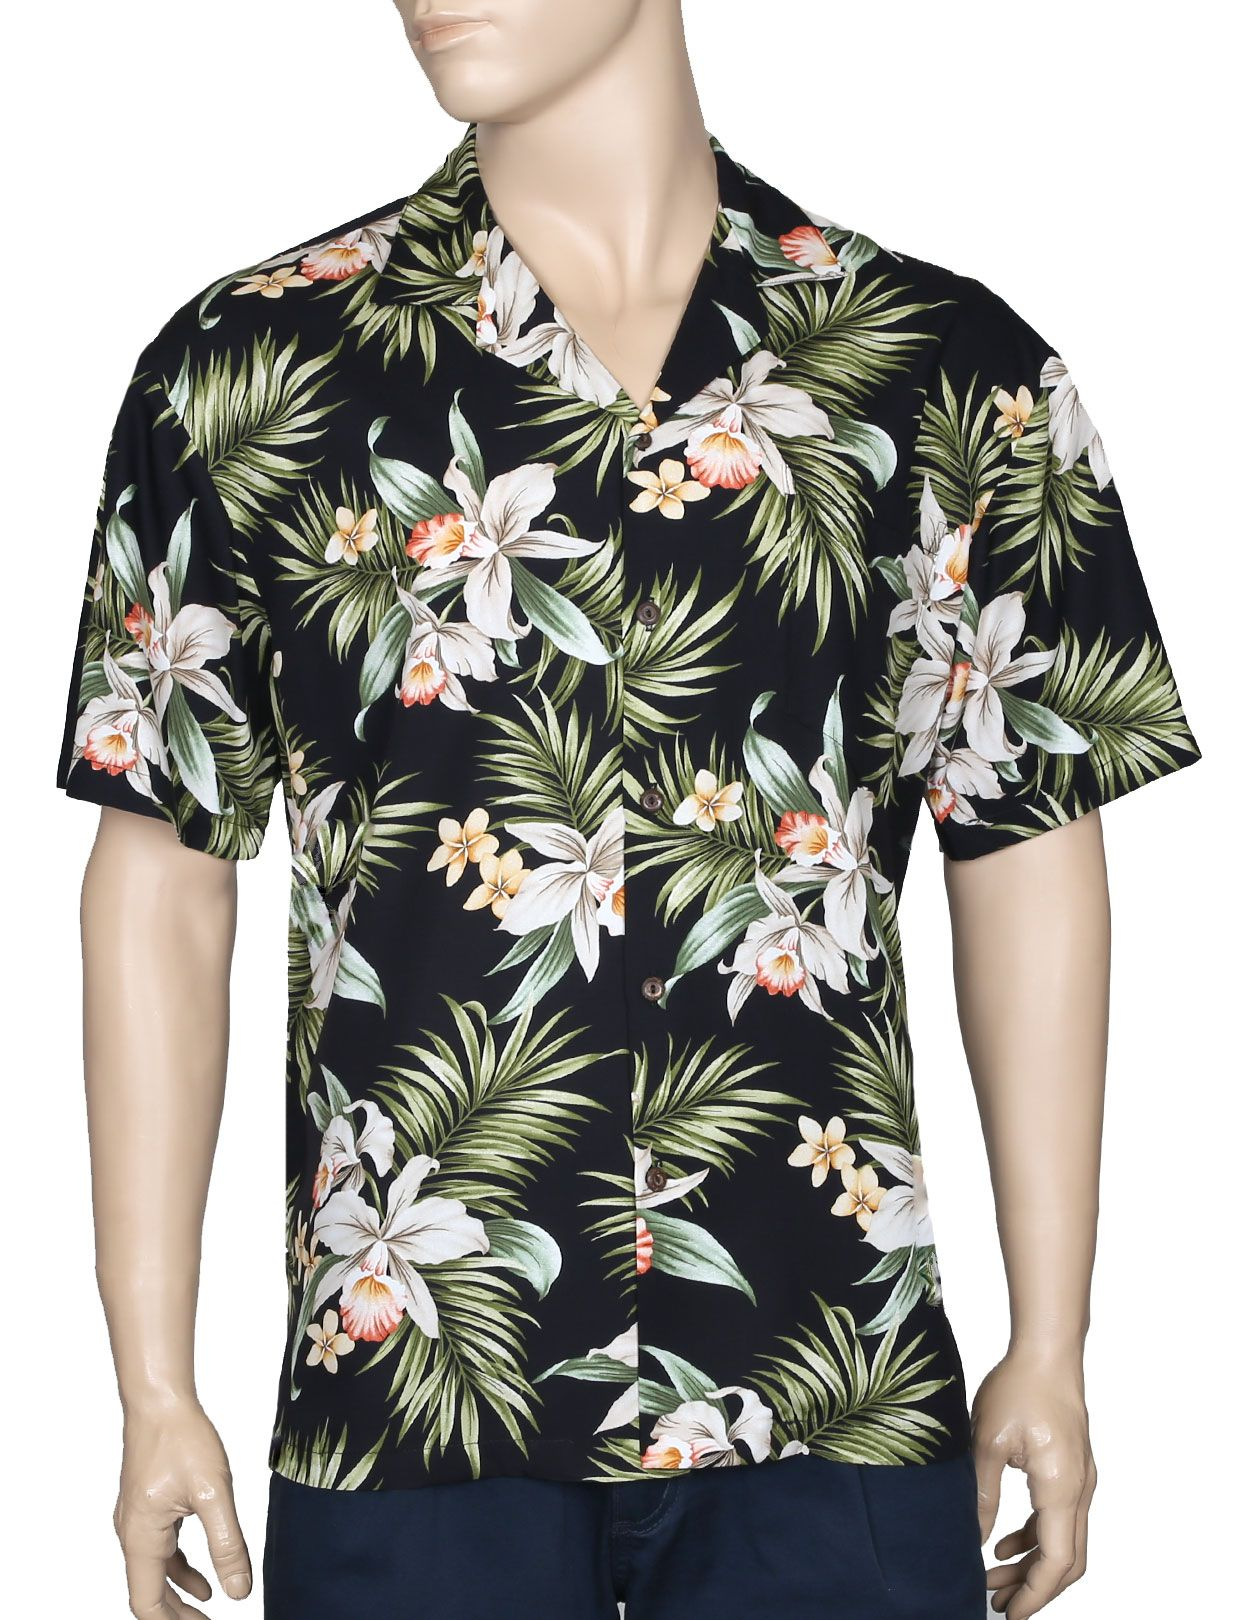 a4a9904d34 Classic Orchids Rayon Aloha Shirt | All About Hawaii & South Pacific ...